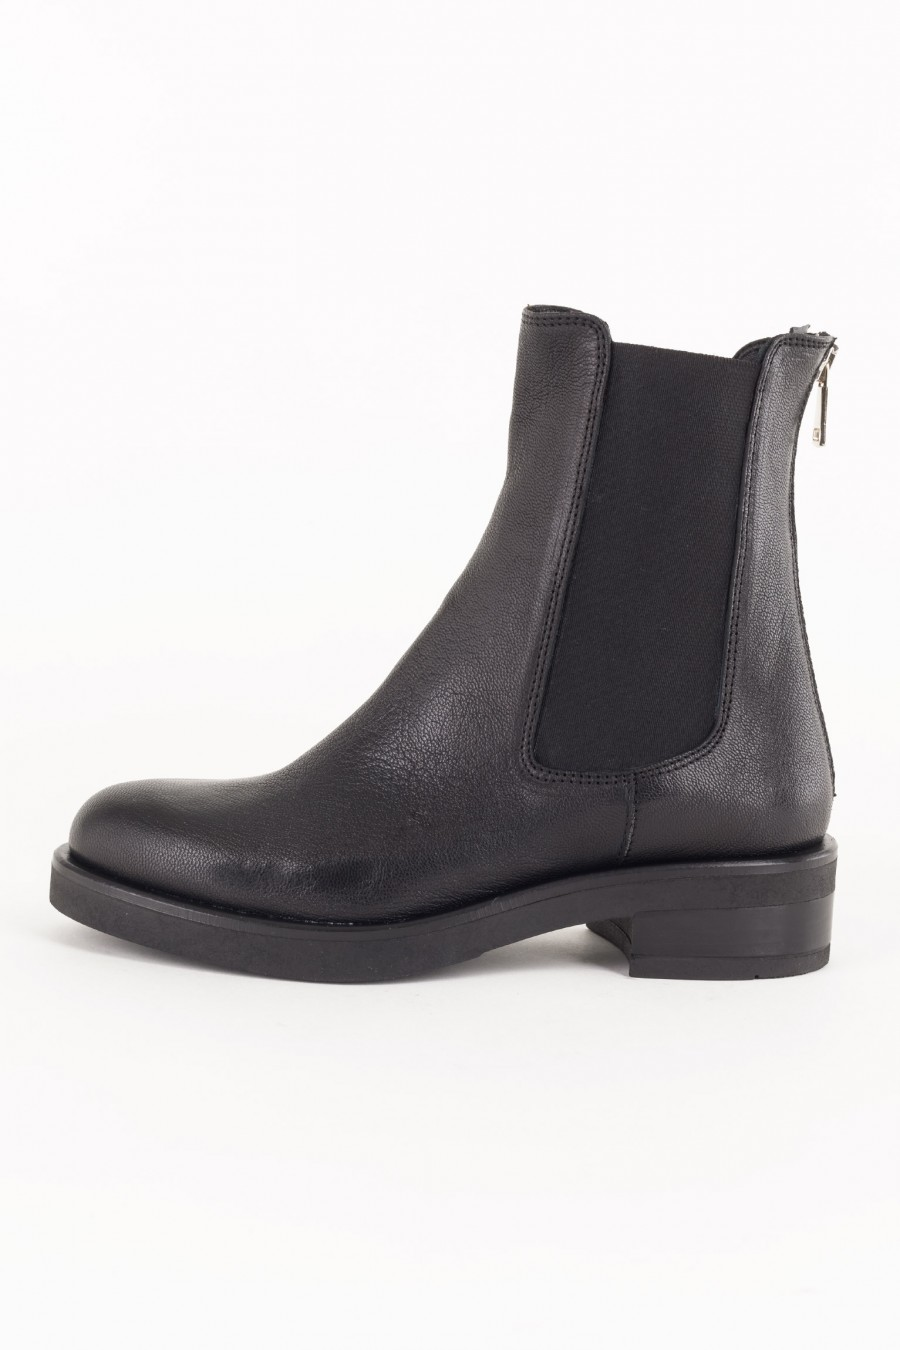 Sporty black boots